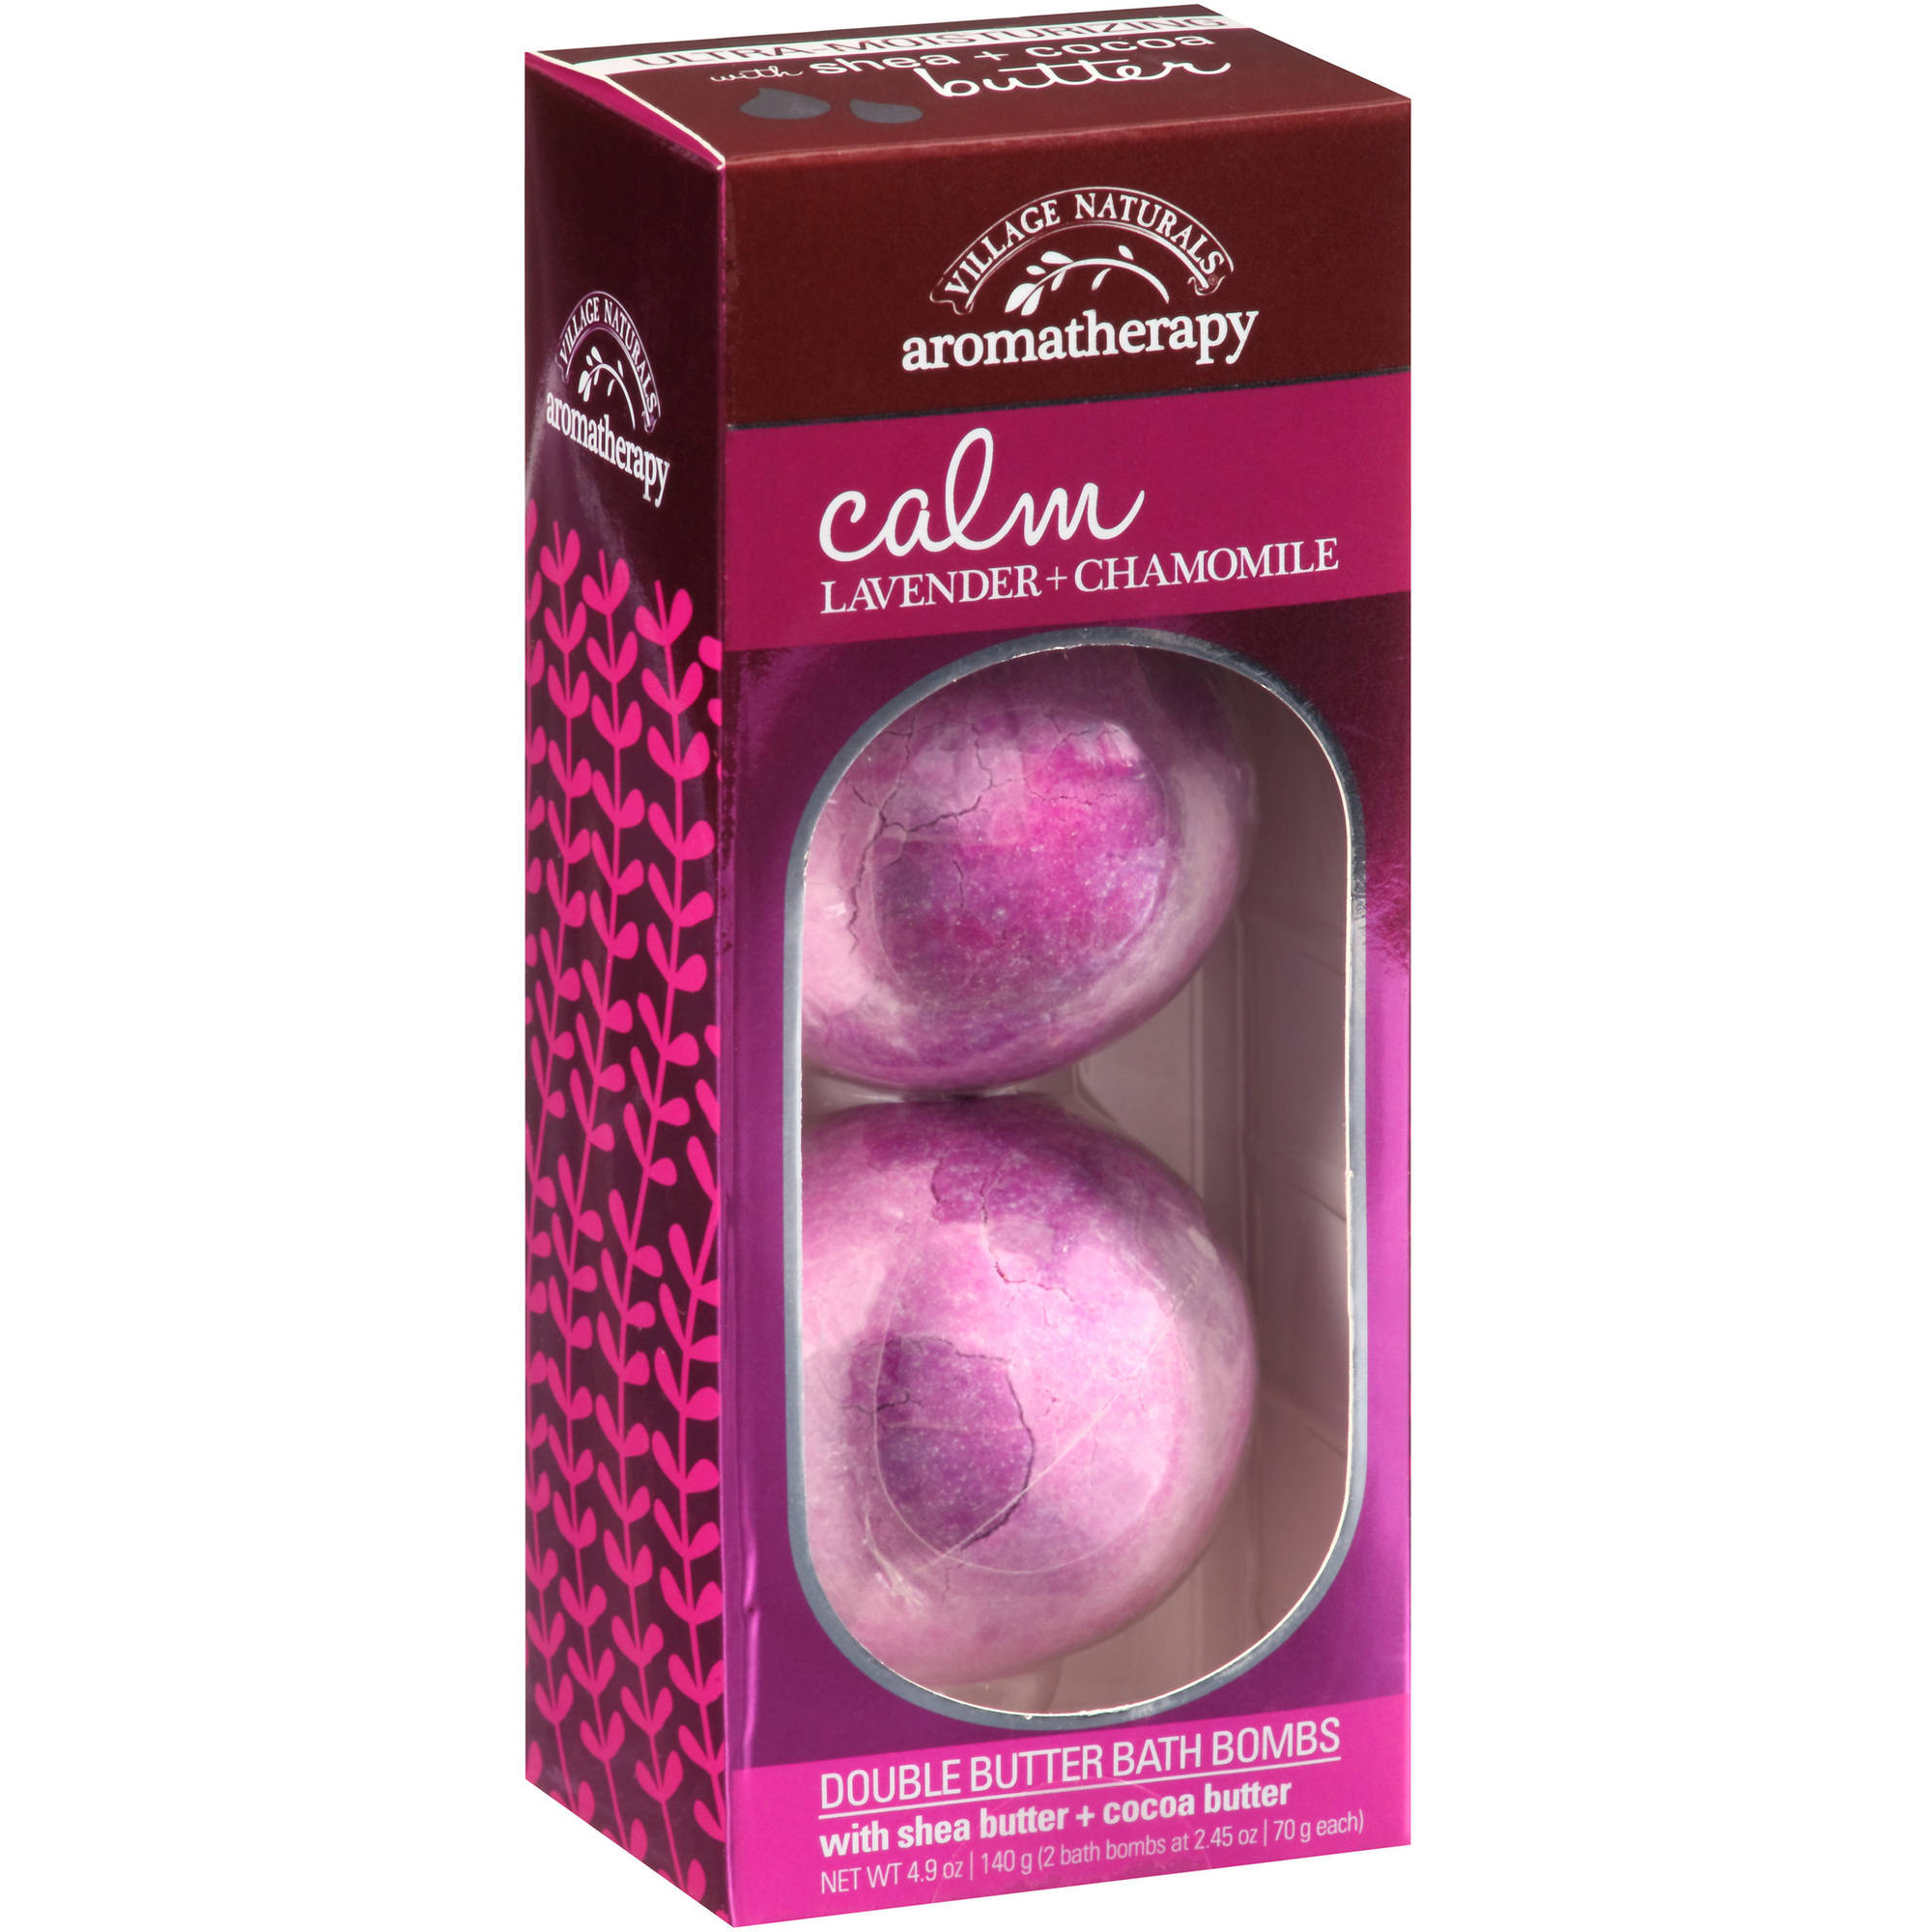 Village Naturals Aromatherapy Calm Lavender + Chamomile Double Butter Bath Bombs